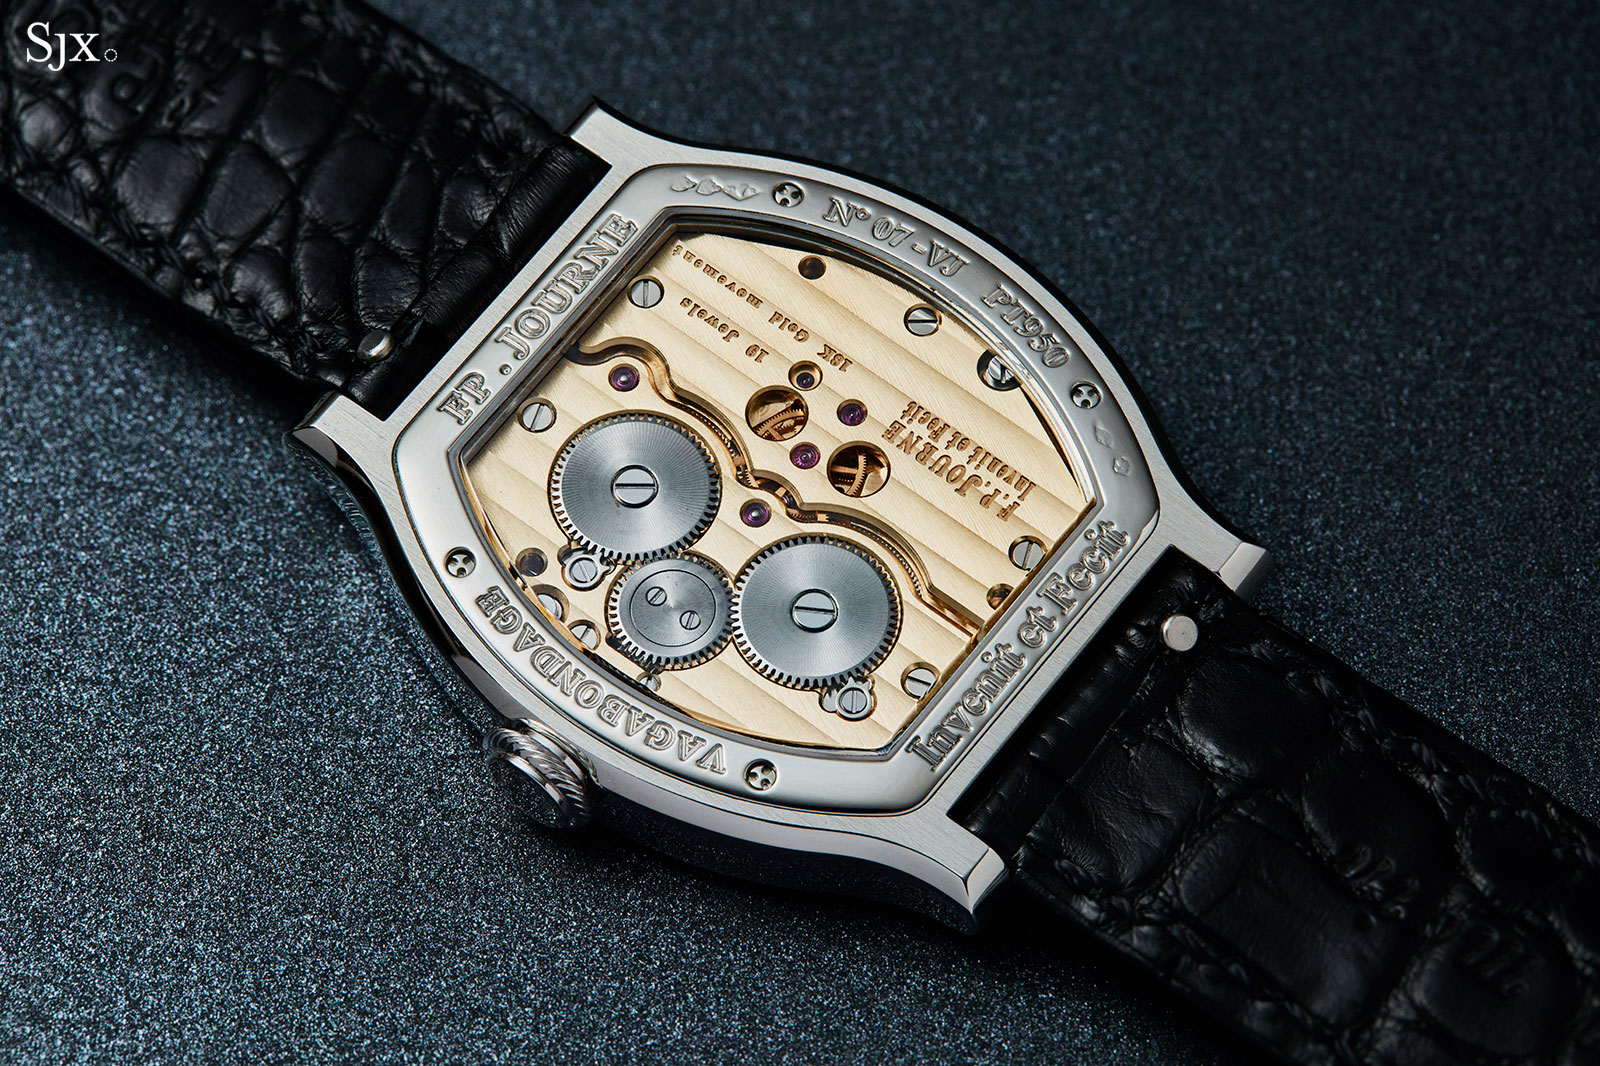 FP Journe Vagabondage I diamonds 4